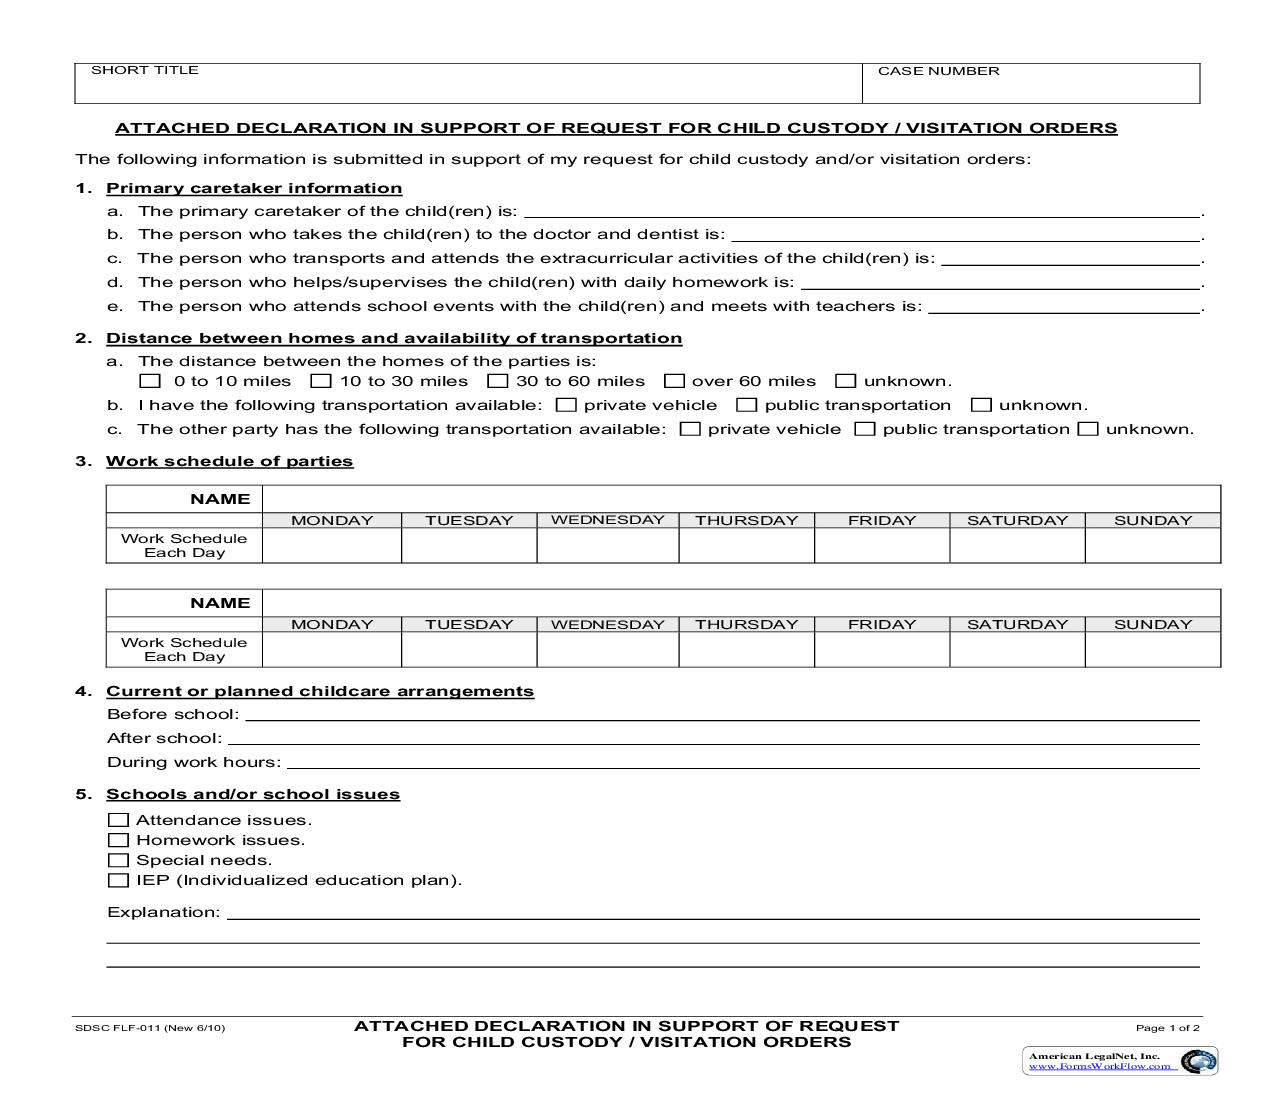 Attached Declaration In Support Of Request For Child Custody-Visitation Orders {FLF-011}   Pdf Fpdf Doc Docx   California